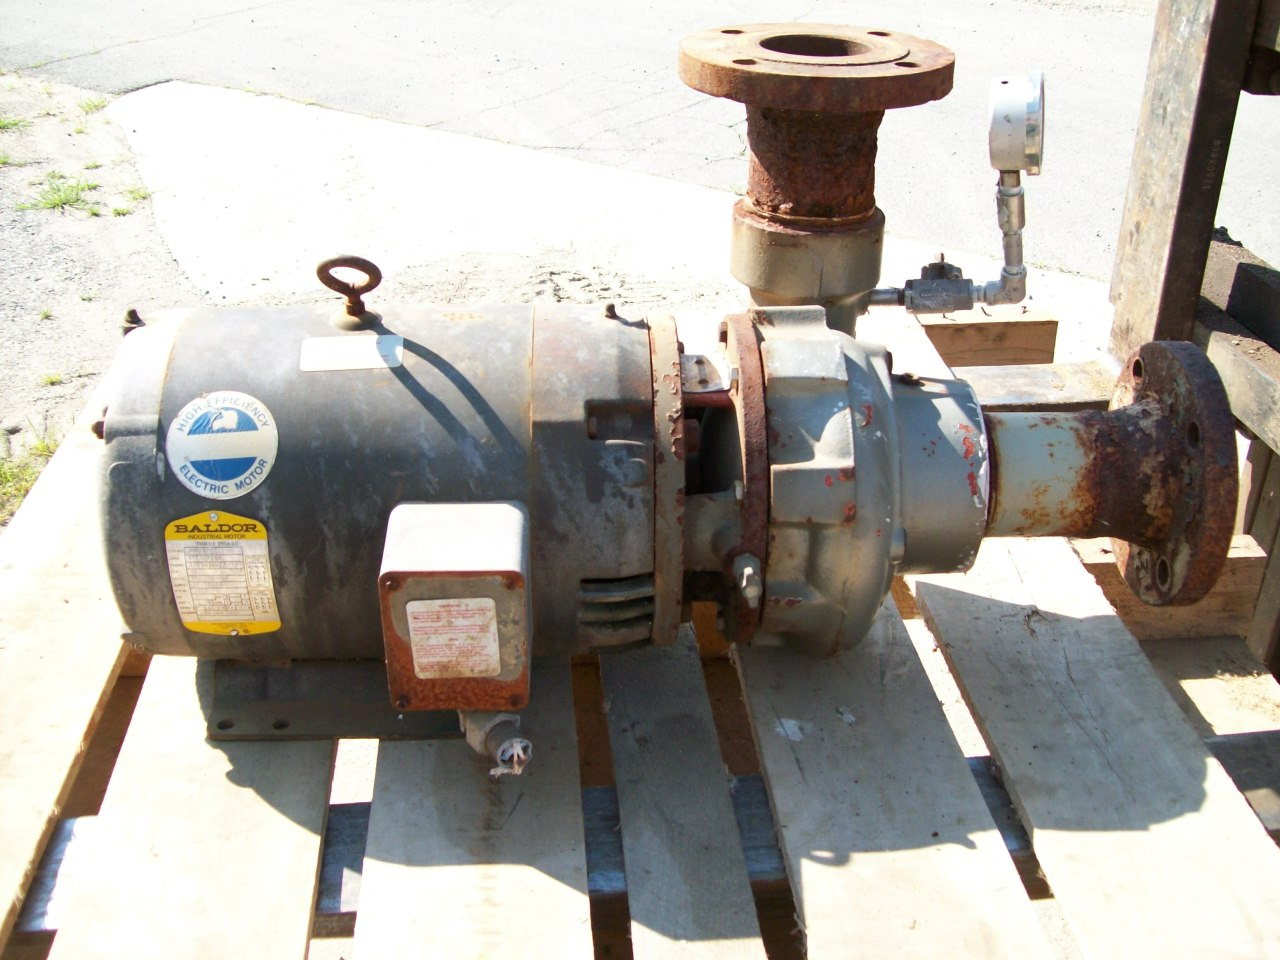 Scot pump Powered by 15hp Baldor motor, 3450 rpm, amps-38-36/18, 208/230/460, frame-215JM, S#F1190, spec-37F196X48, cat#-JMM3314T